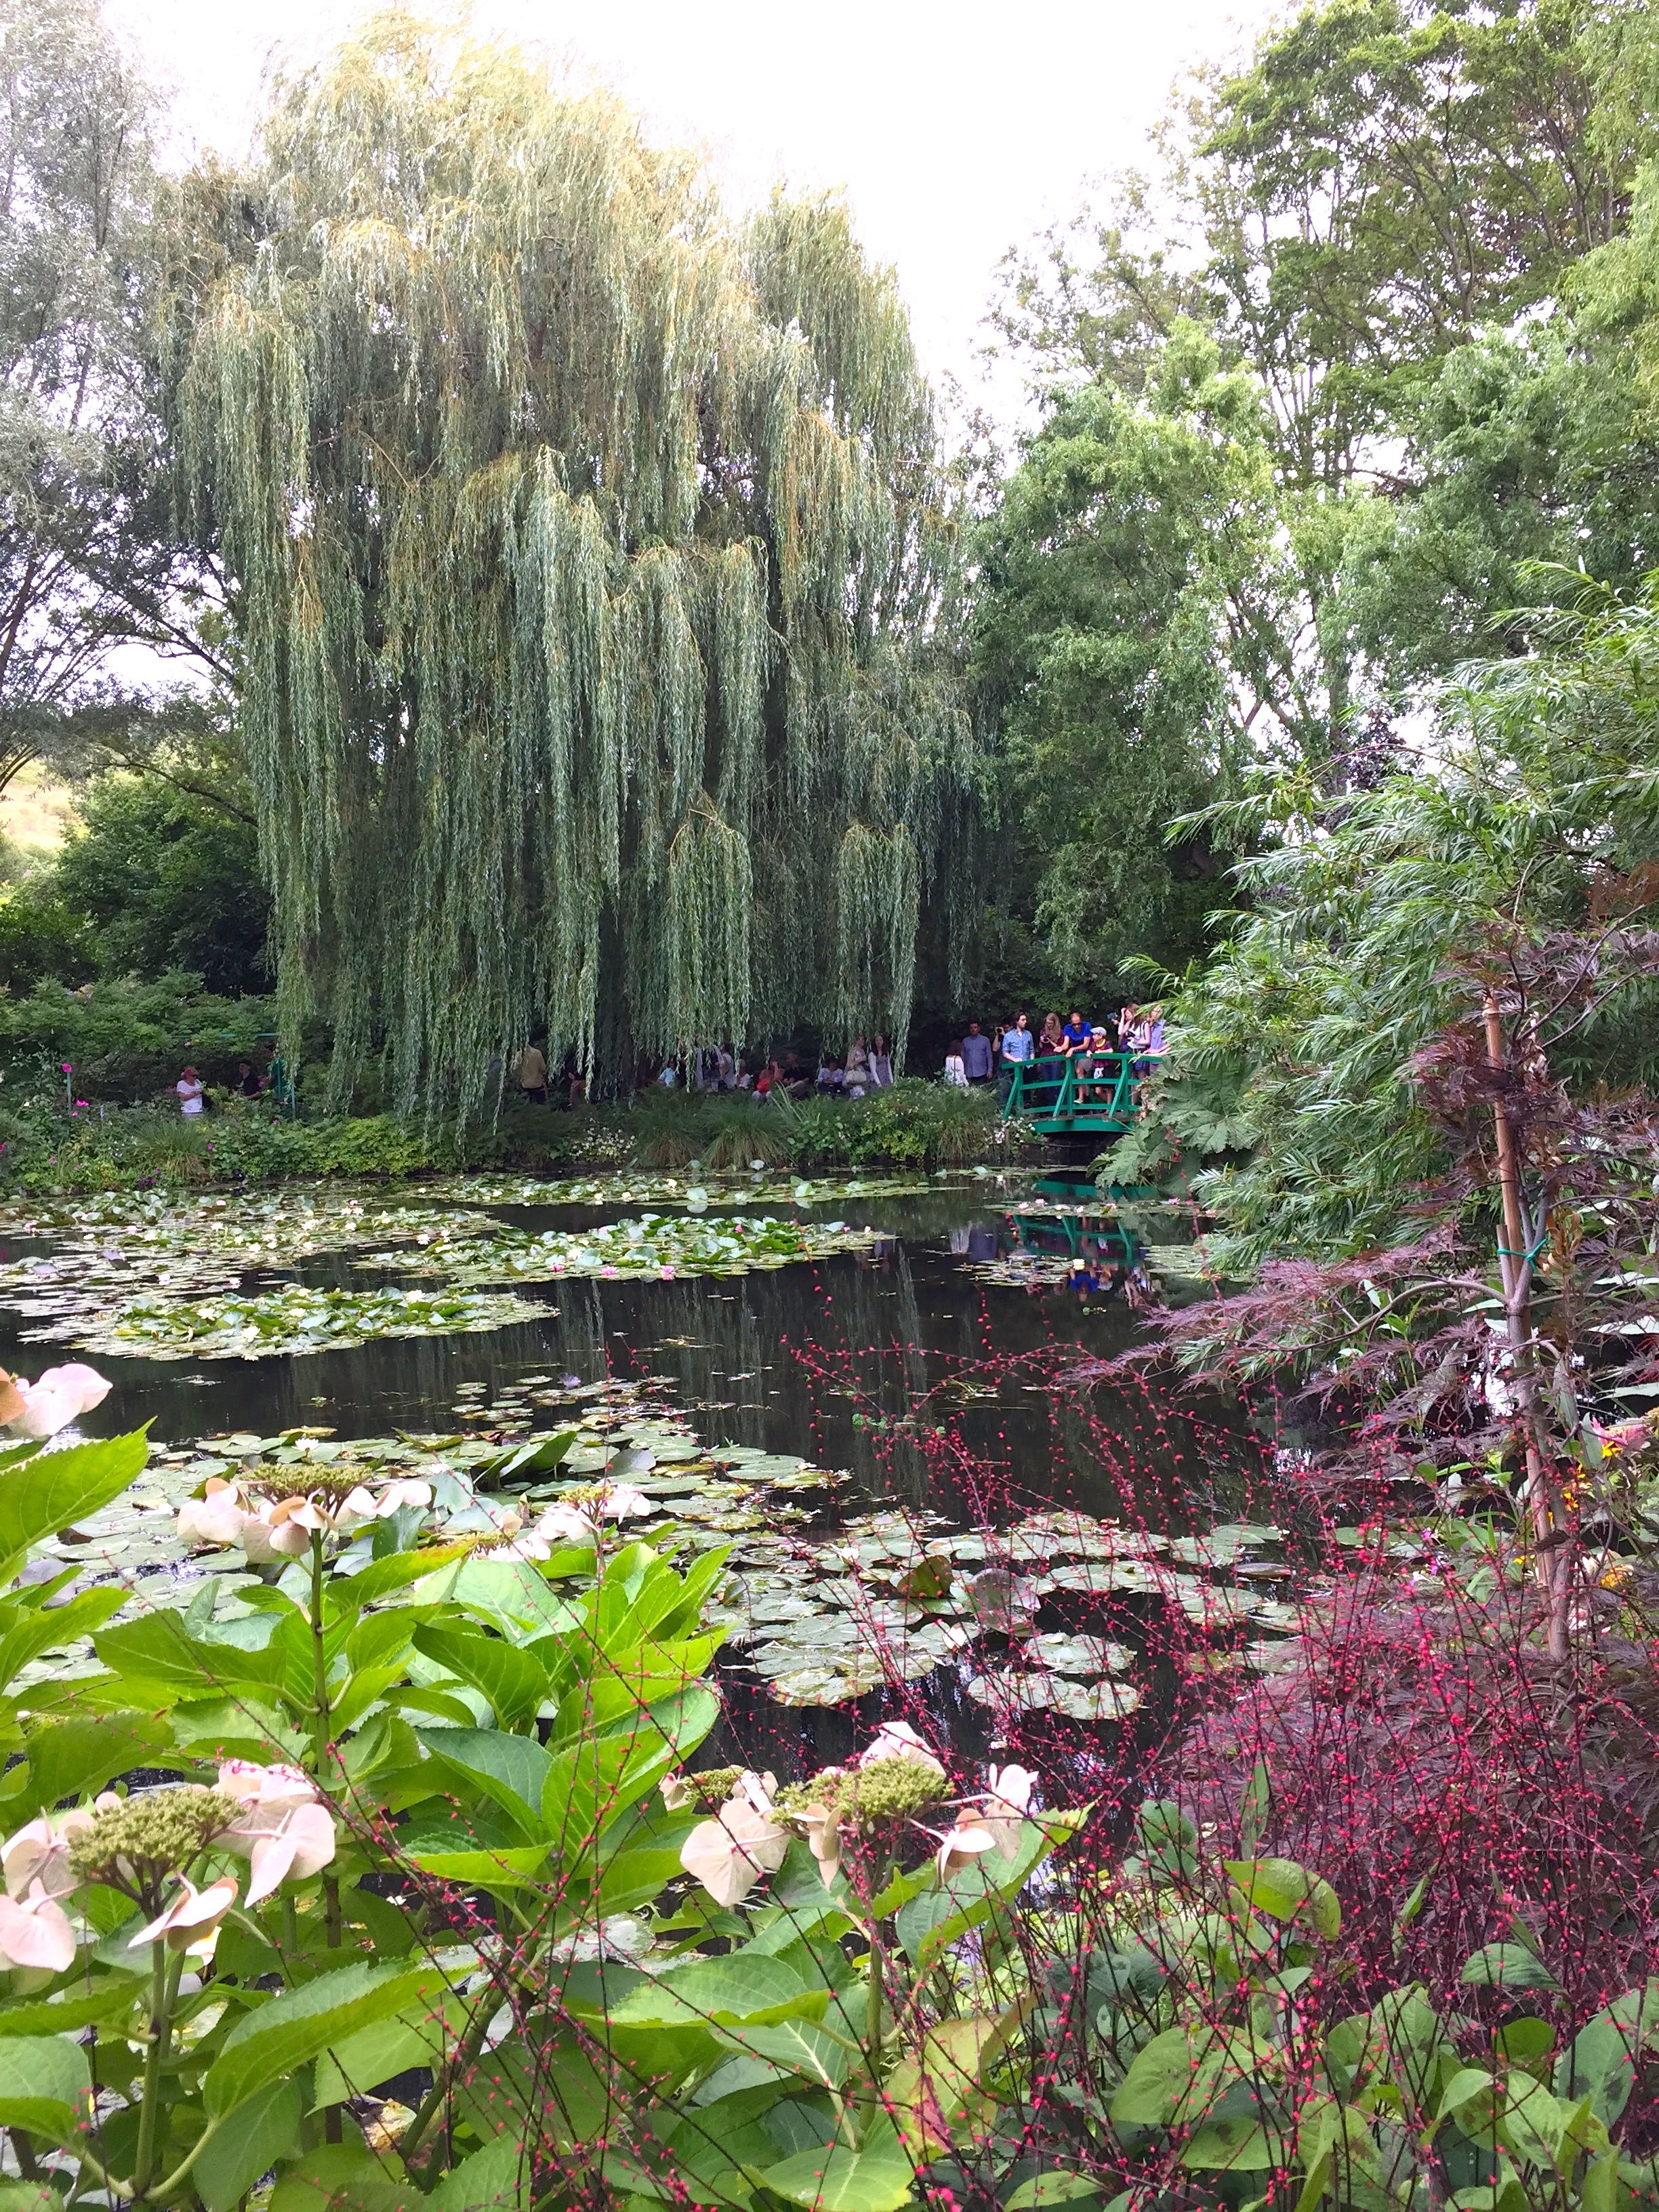 A Willow Tree Made Famous By Claude Monet Stands Tall Over The Water Lily  Ponds.